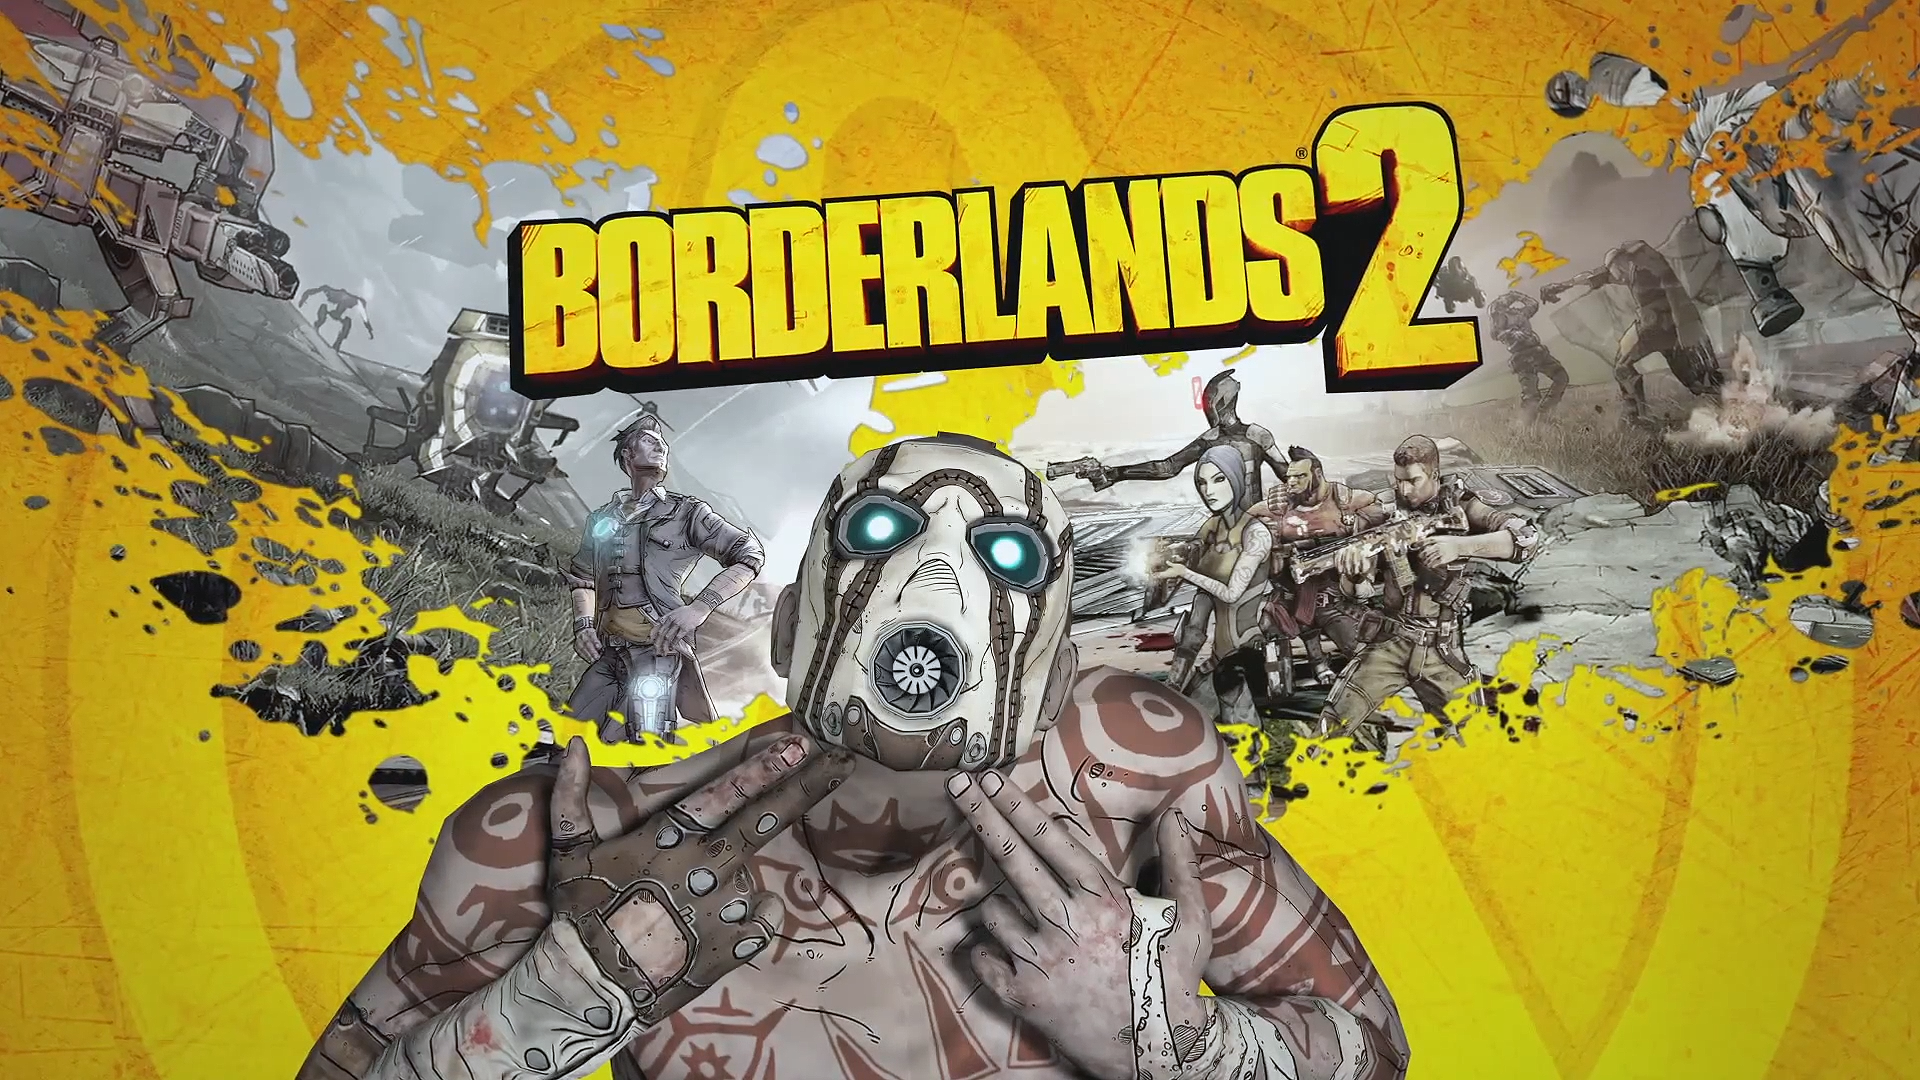 borderlands 2 wallpaper yuiphone borderlands 2 logo 1920x1080 ������������ �� ���� borderlands 2 (��� dlc) borderlands 2 the fridge fuse box at readyjetset.co